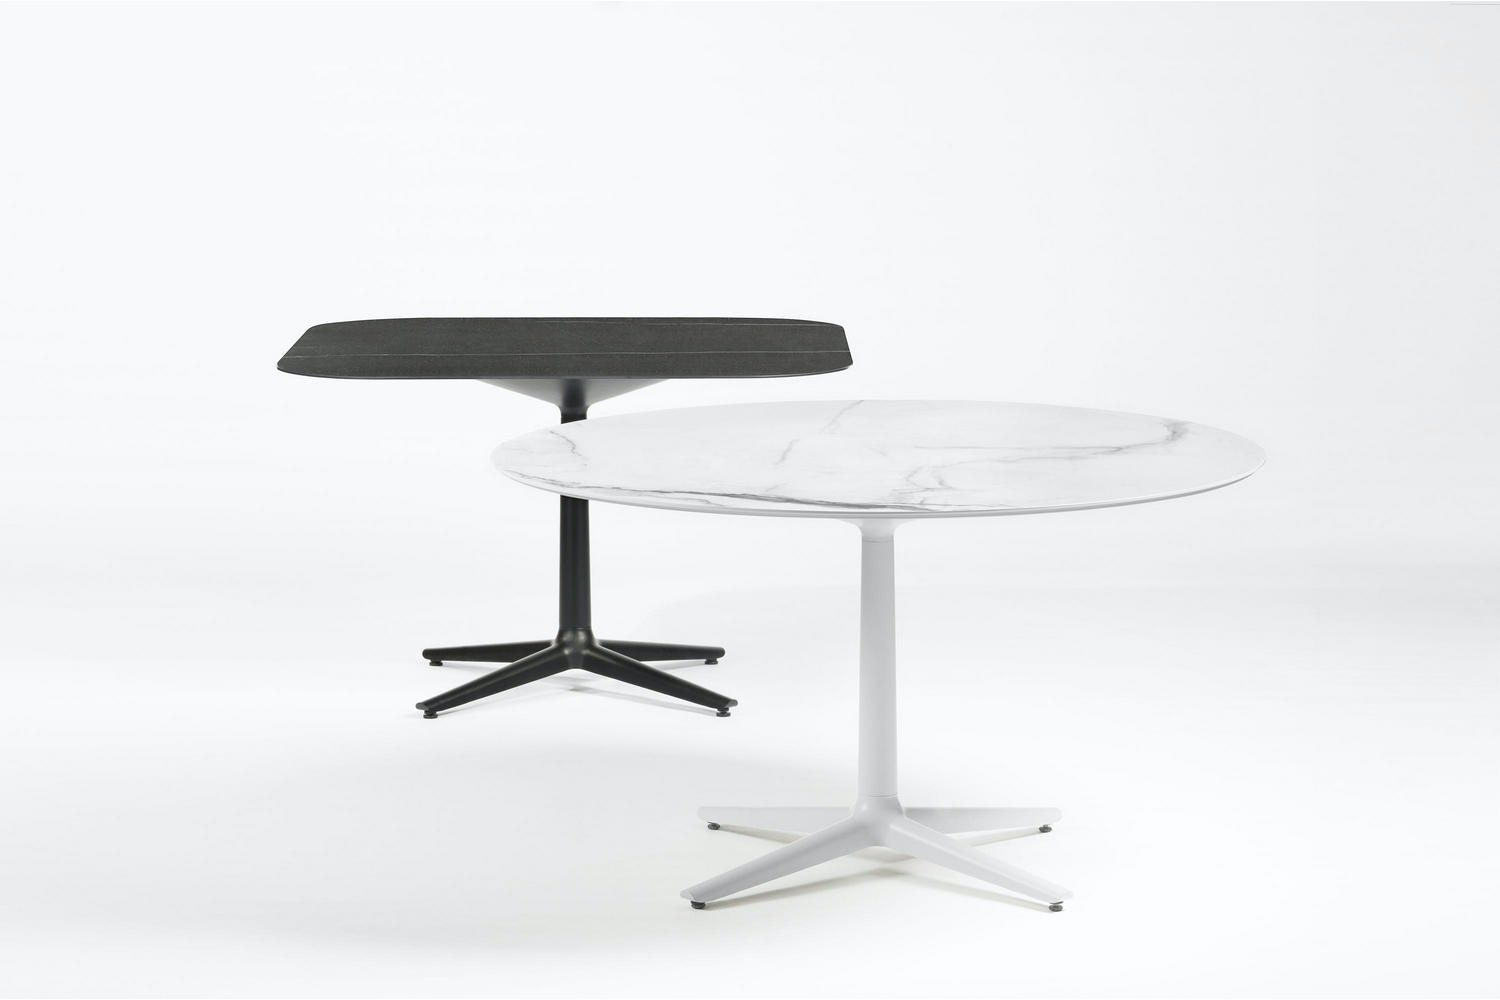 Multiplo Table by Antonio Citterio for Kartell